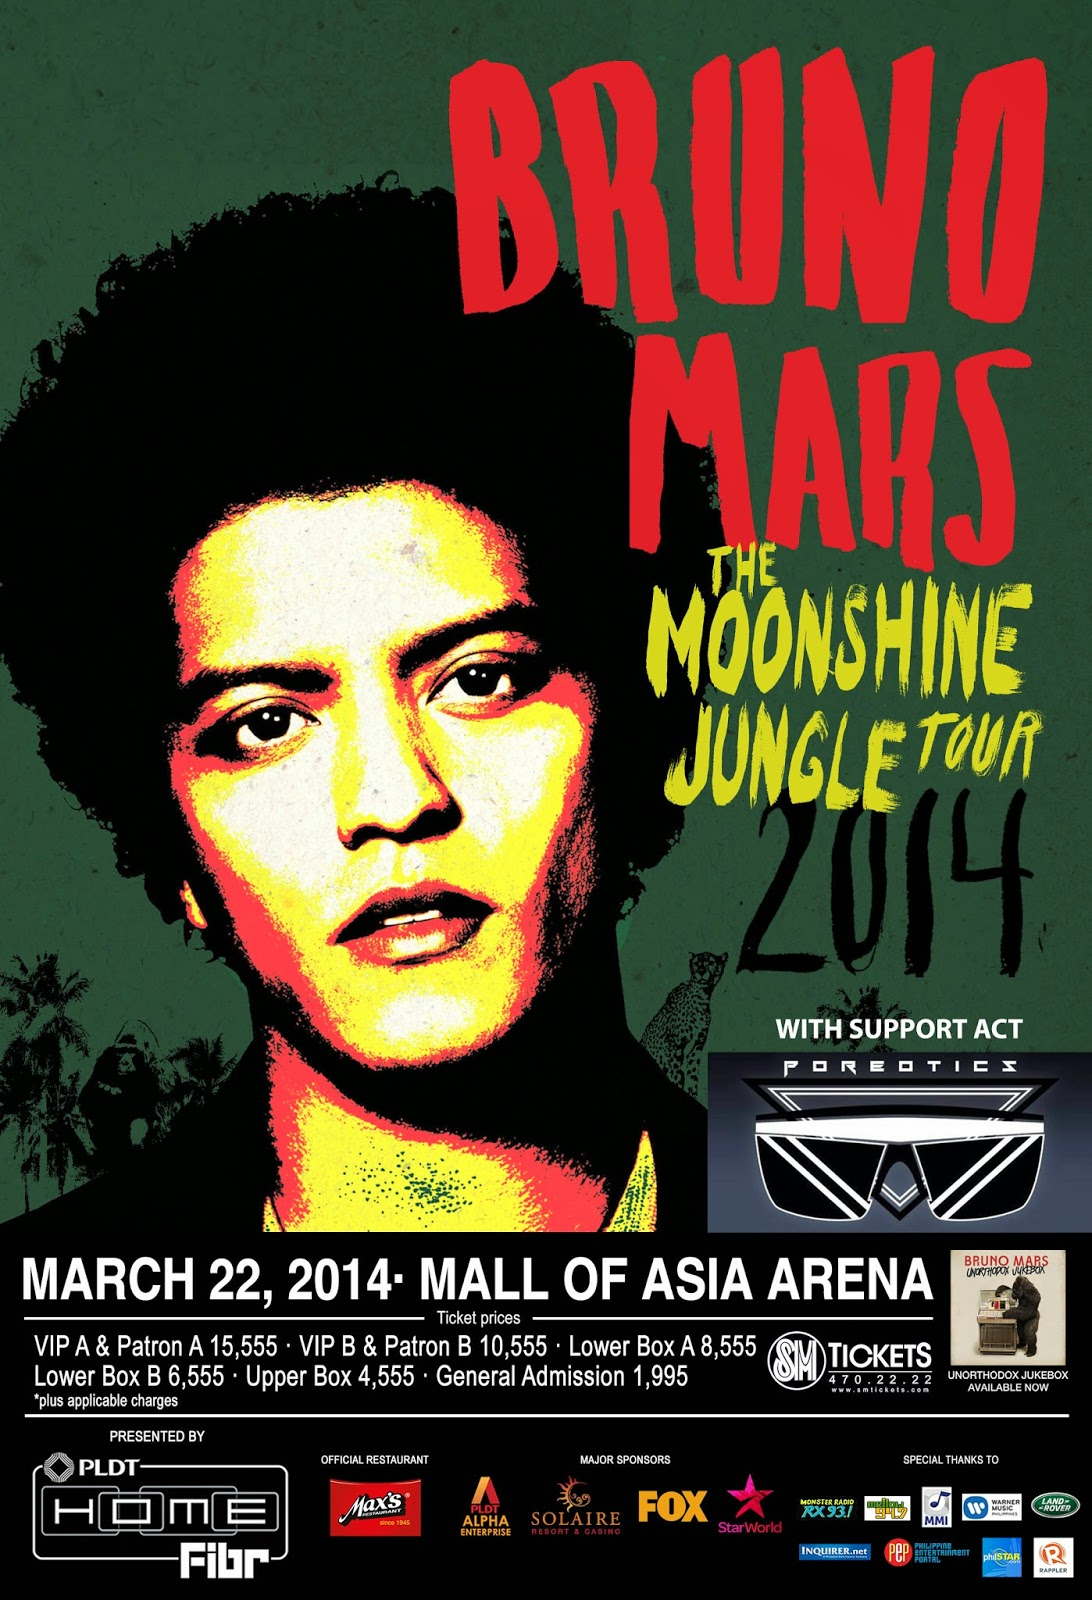 the moonshine jungle tour 2014 hits manila tomorrow night manila concert scene. Black Bedroom Furniture Sets. Home Design Ideas